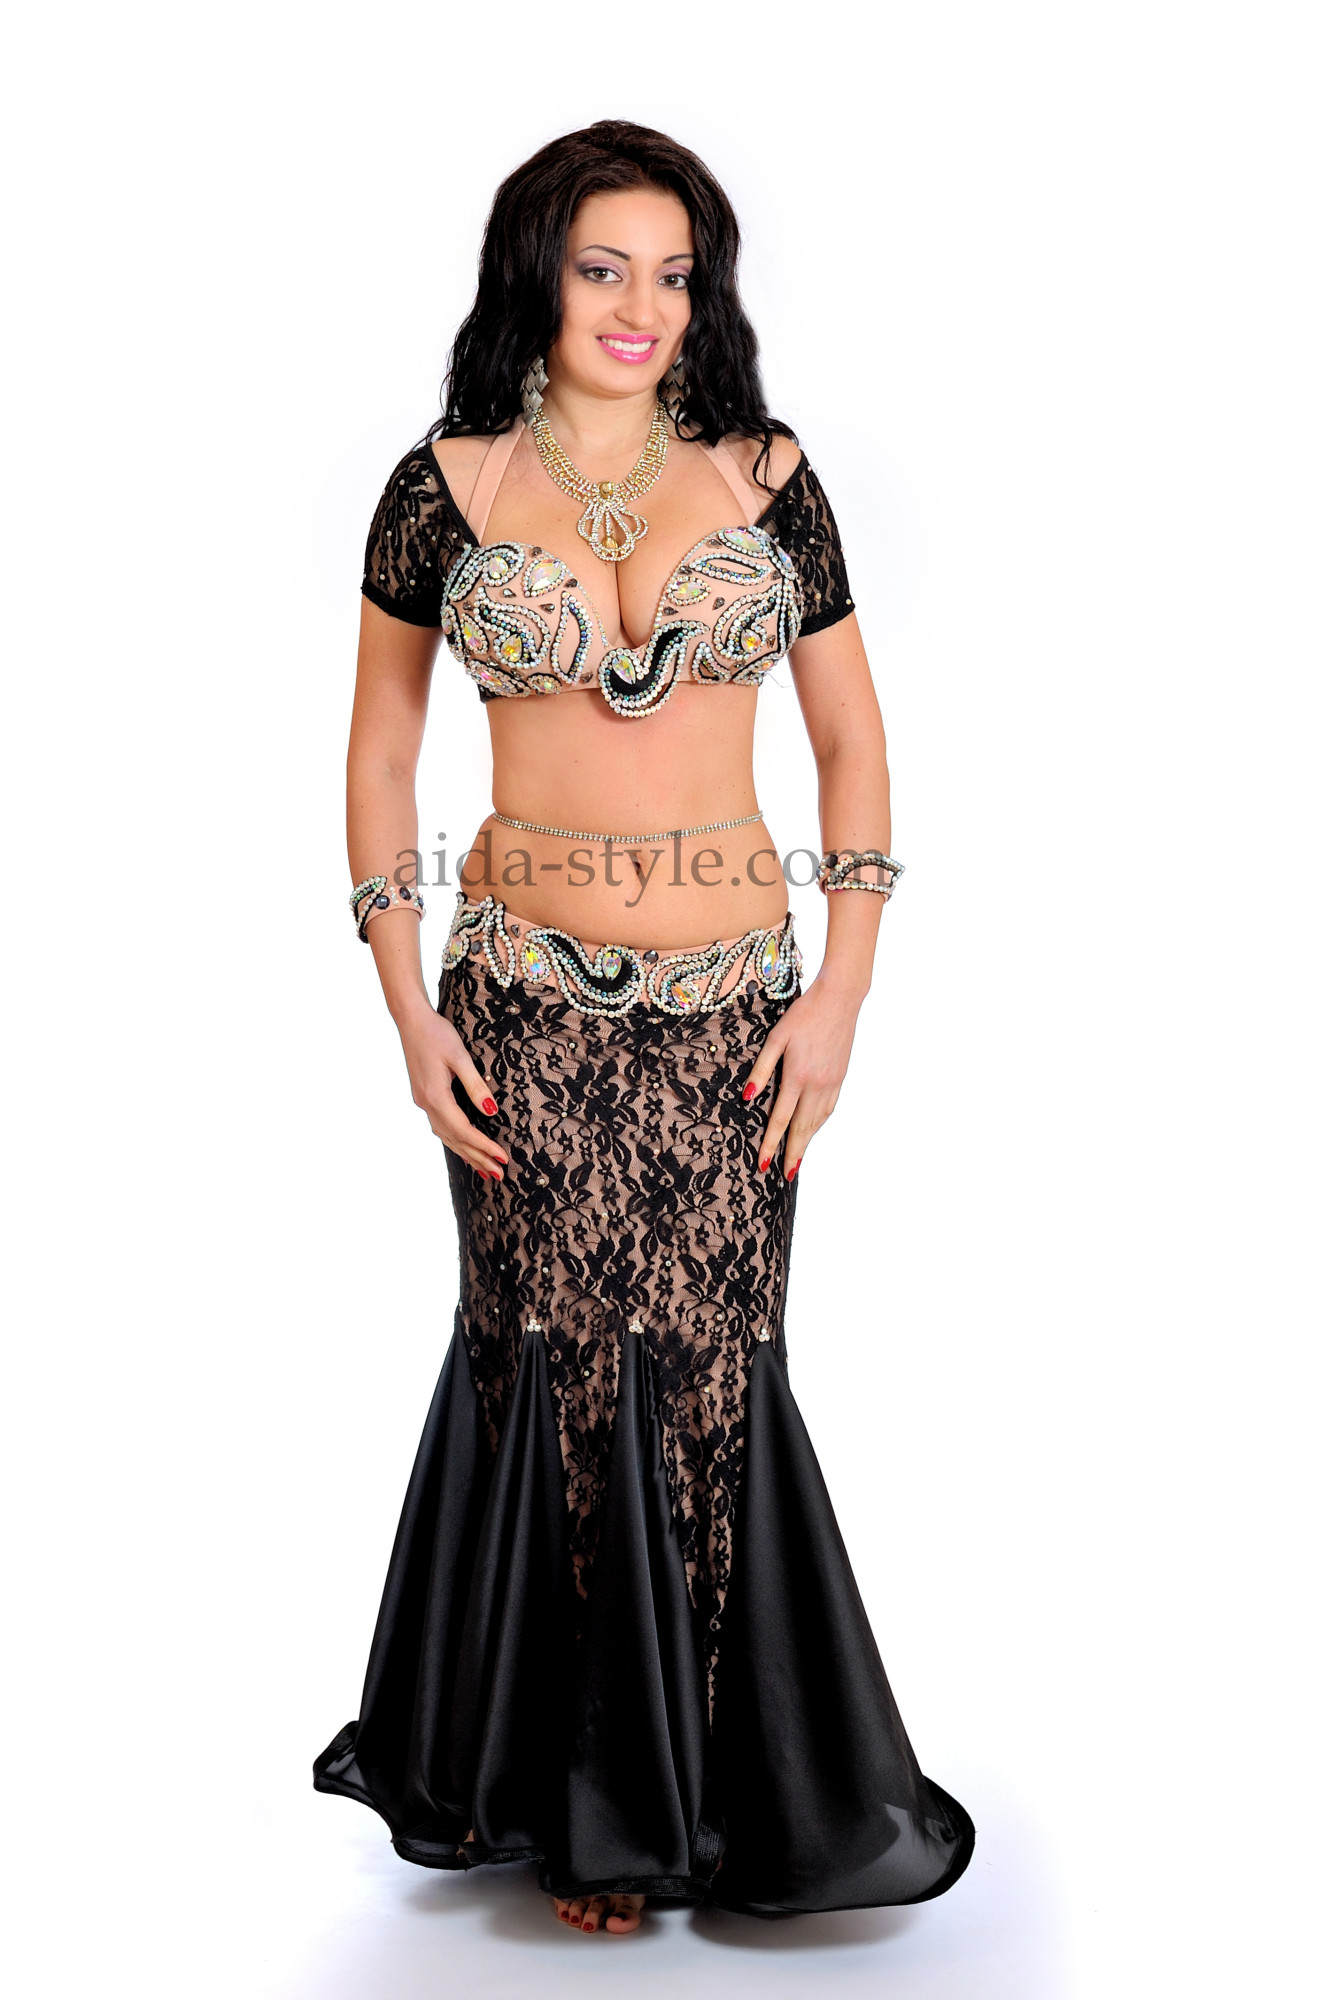 Professional belly dance costume with mermaid skirt in the style of classical evening dress